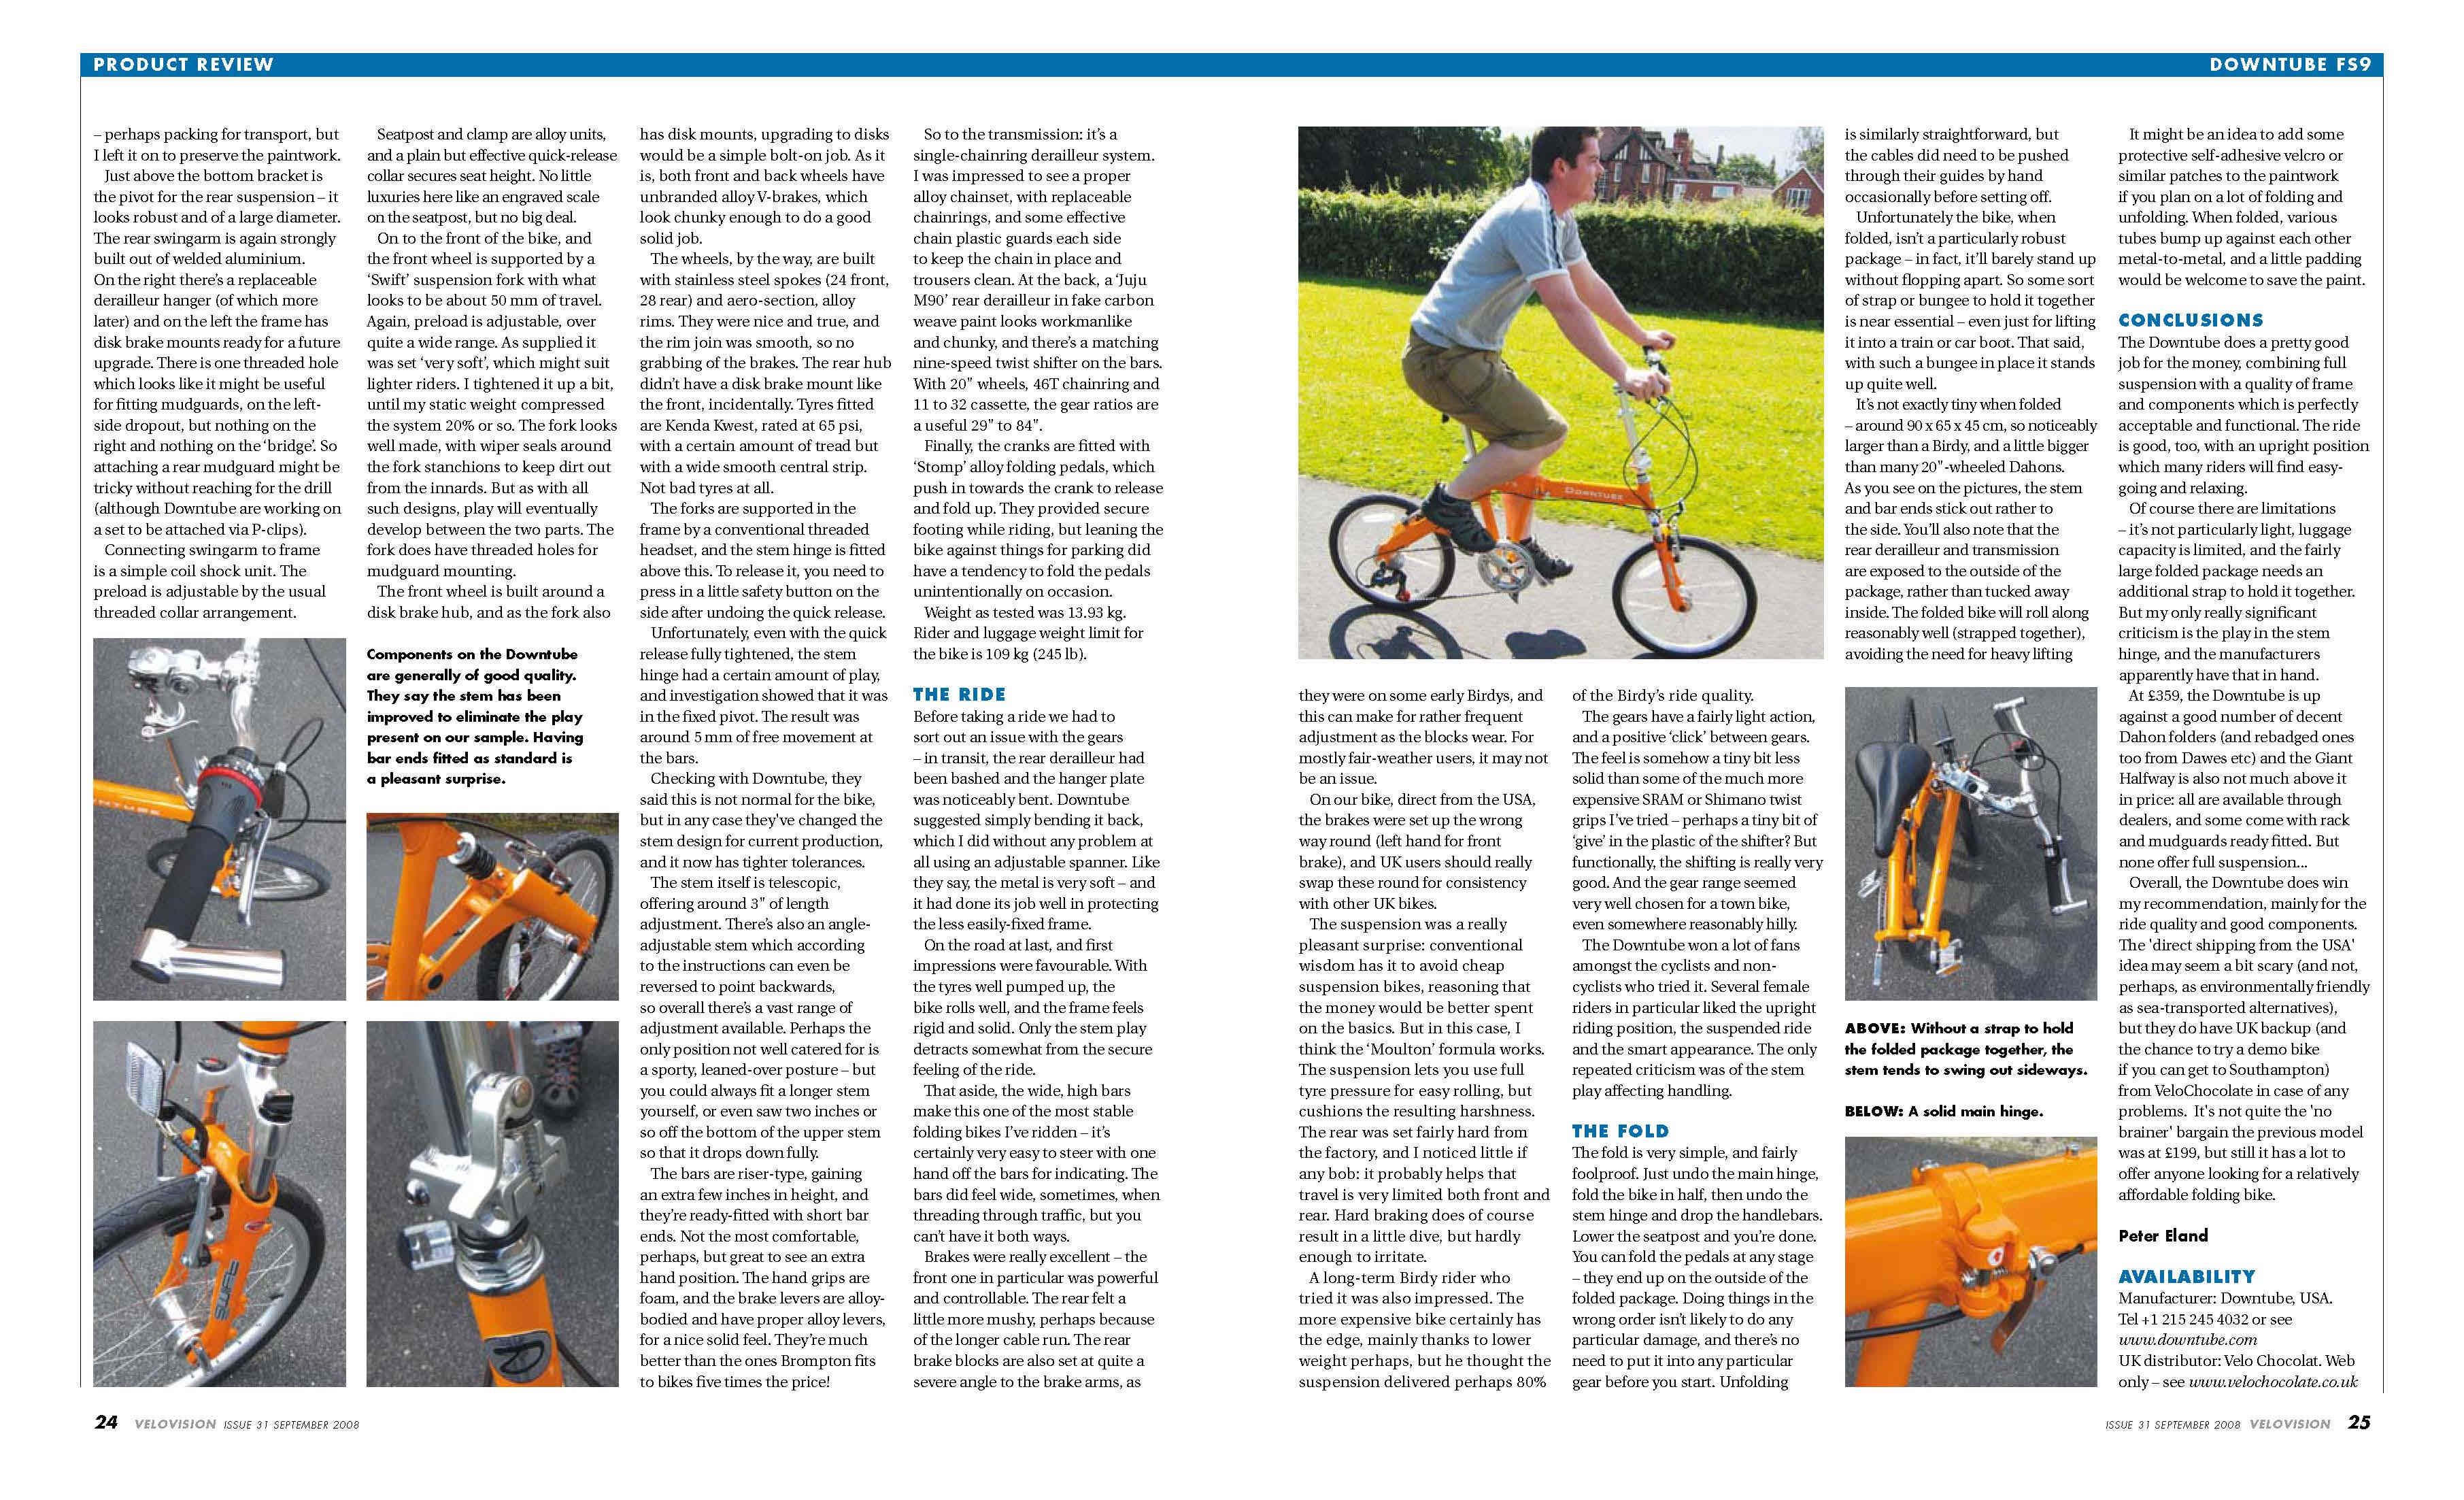 velo-vision-magazine-downtube-review-page-3.jpg